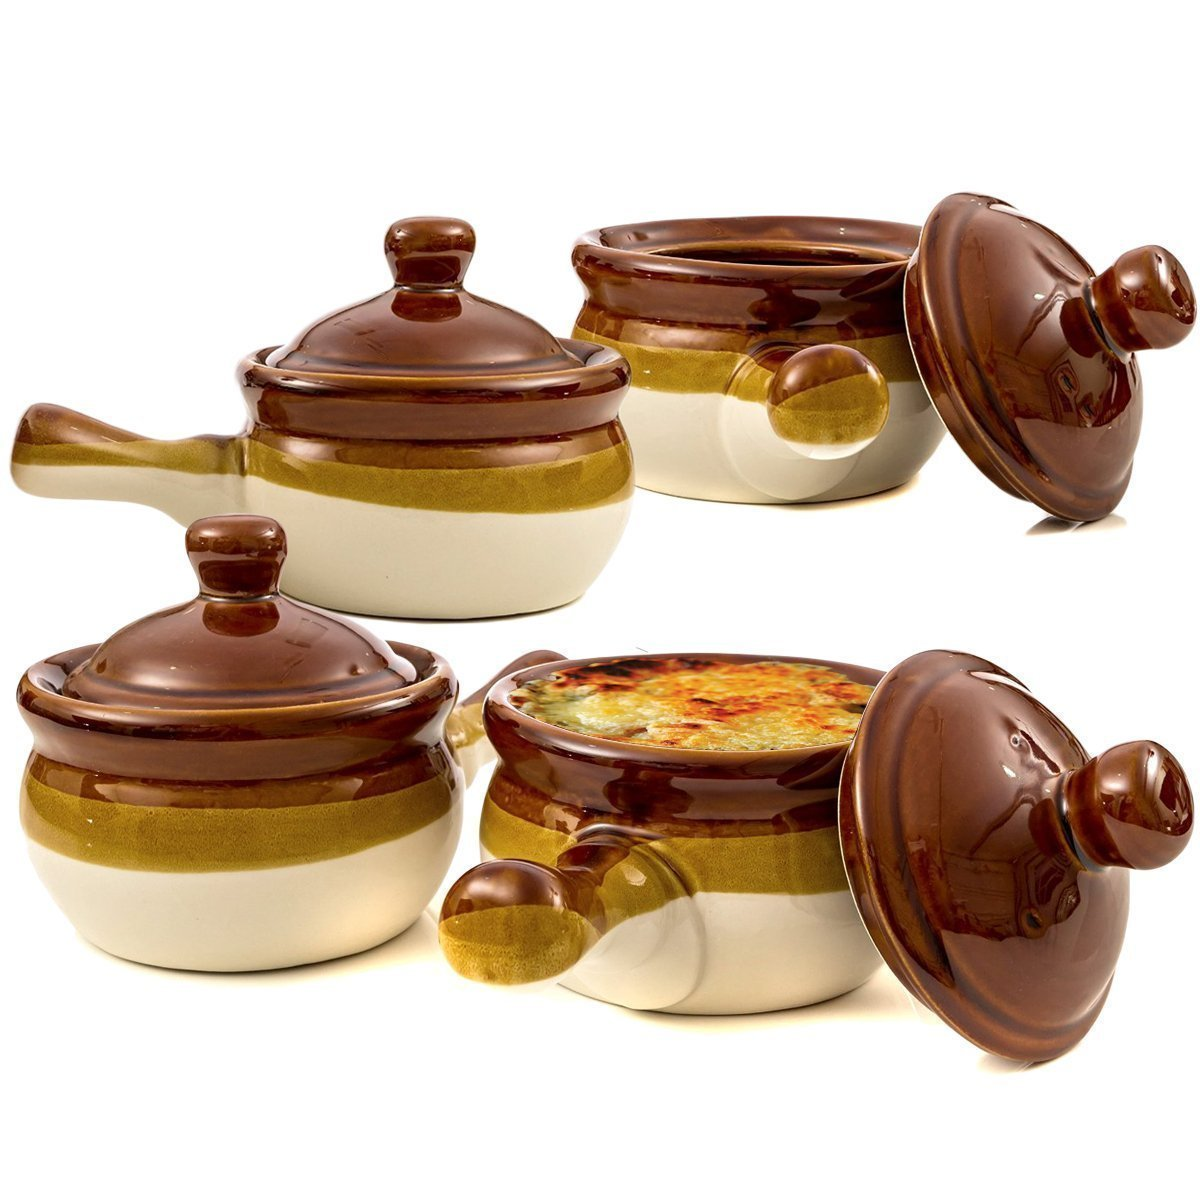 Gibson French Onion Soup Crock Bowls with Handles, 15 Ounce - Set of 4